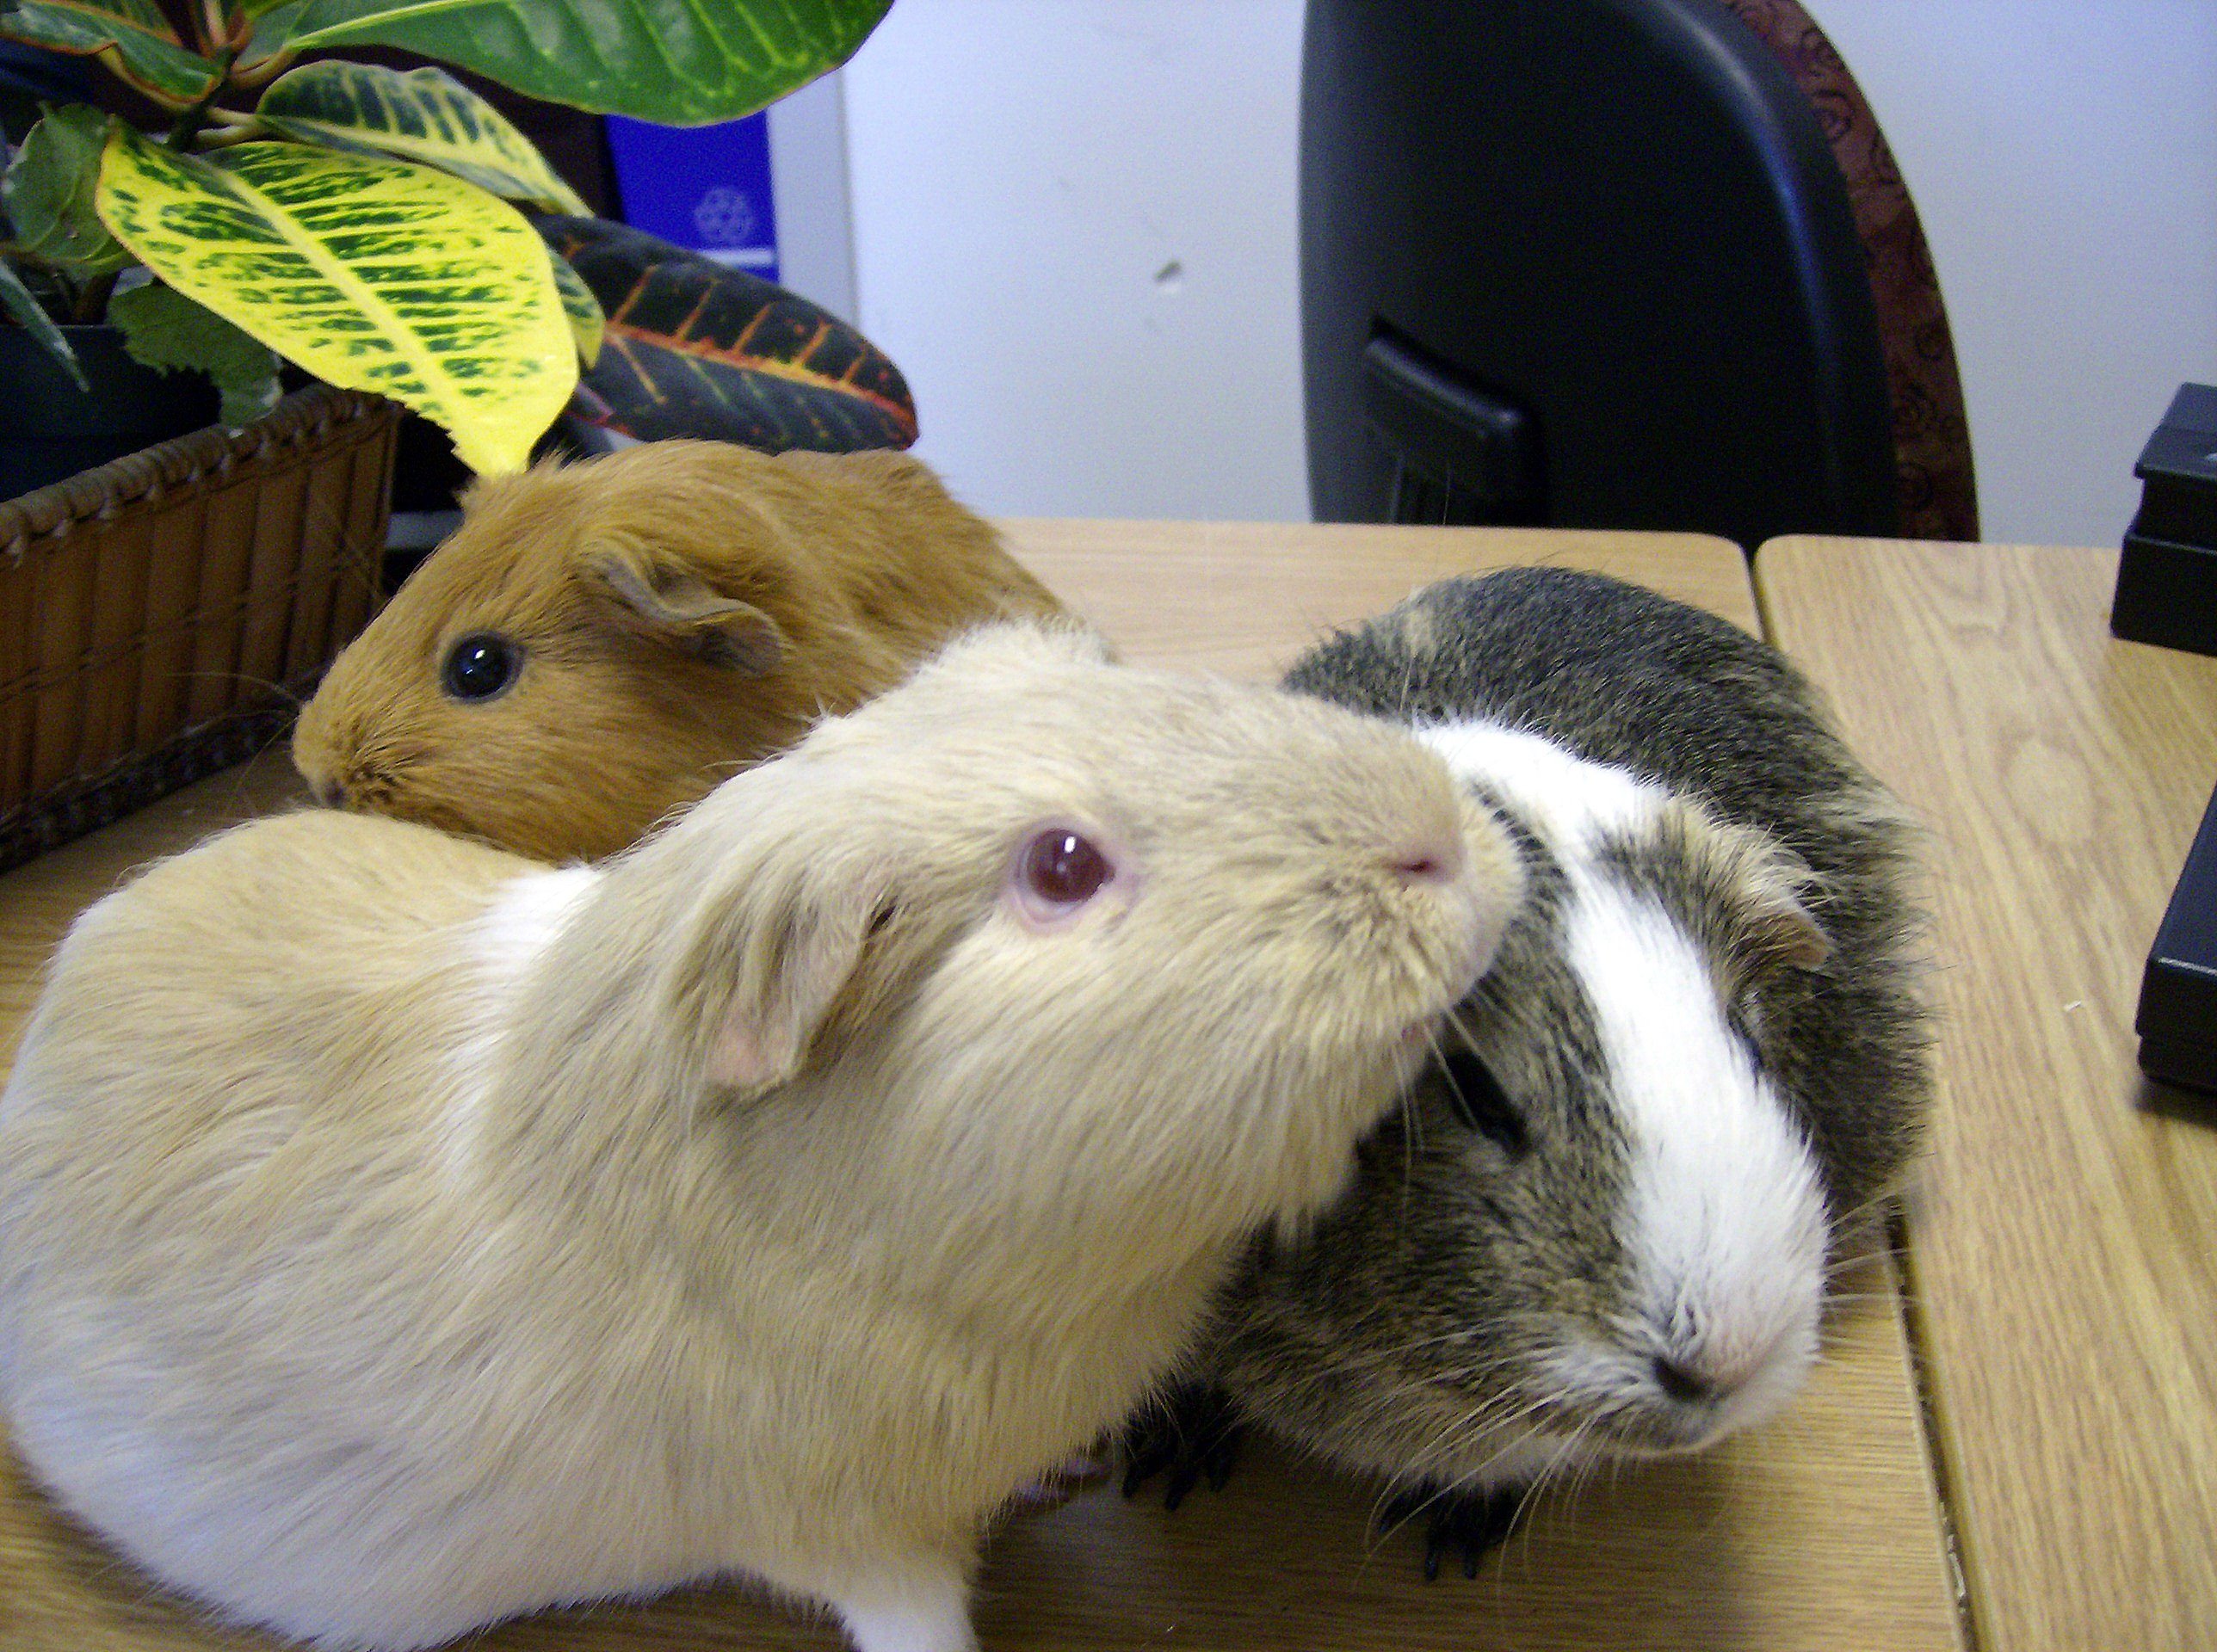 Different Pictures of Guinea Pigs